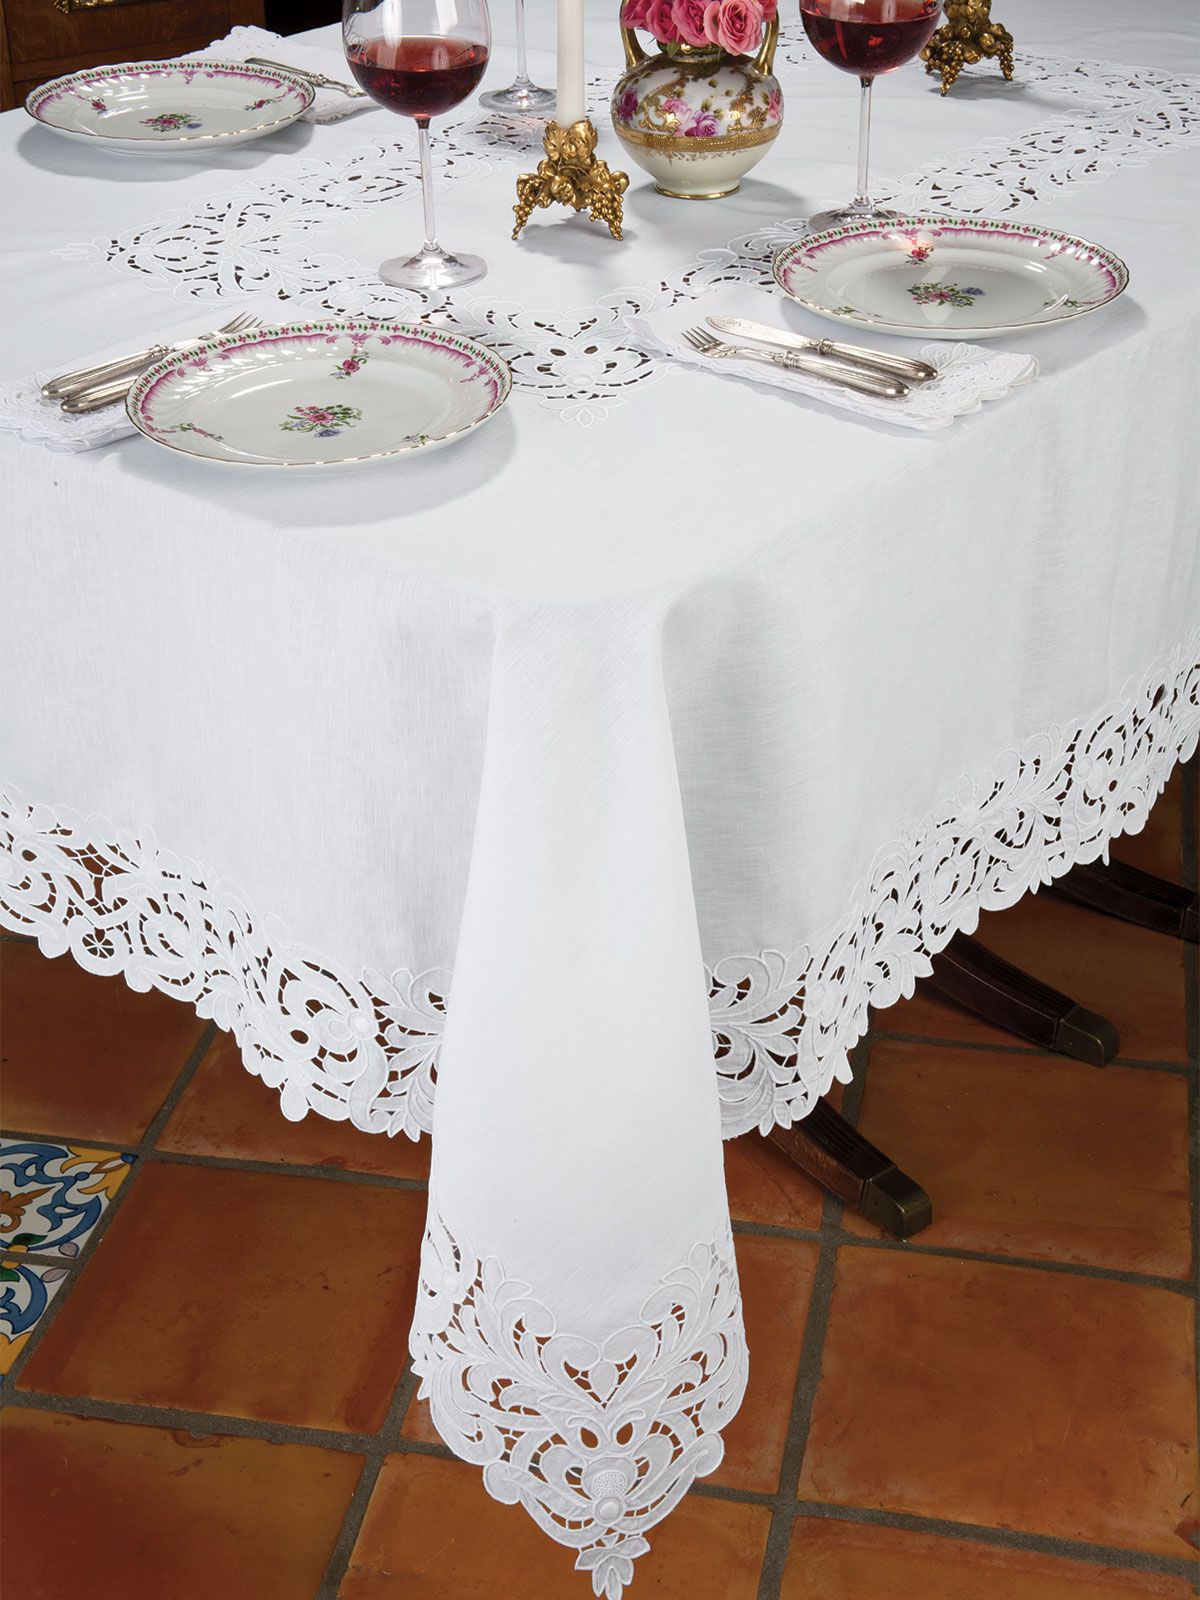 Florence   Fine Table Linens   Splendor From The Past, Incredibly Complex  Cutwork And Hand Embroidery On Finest Italian Linen Creates A Look Of  Lavish ...